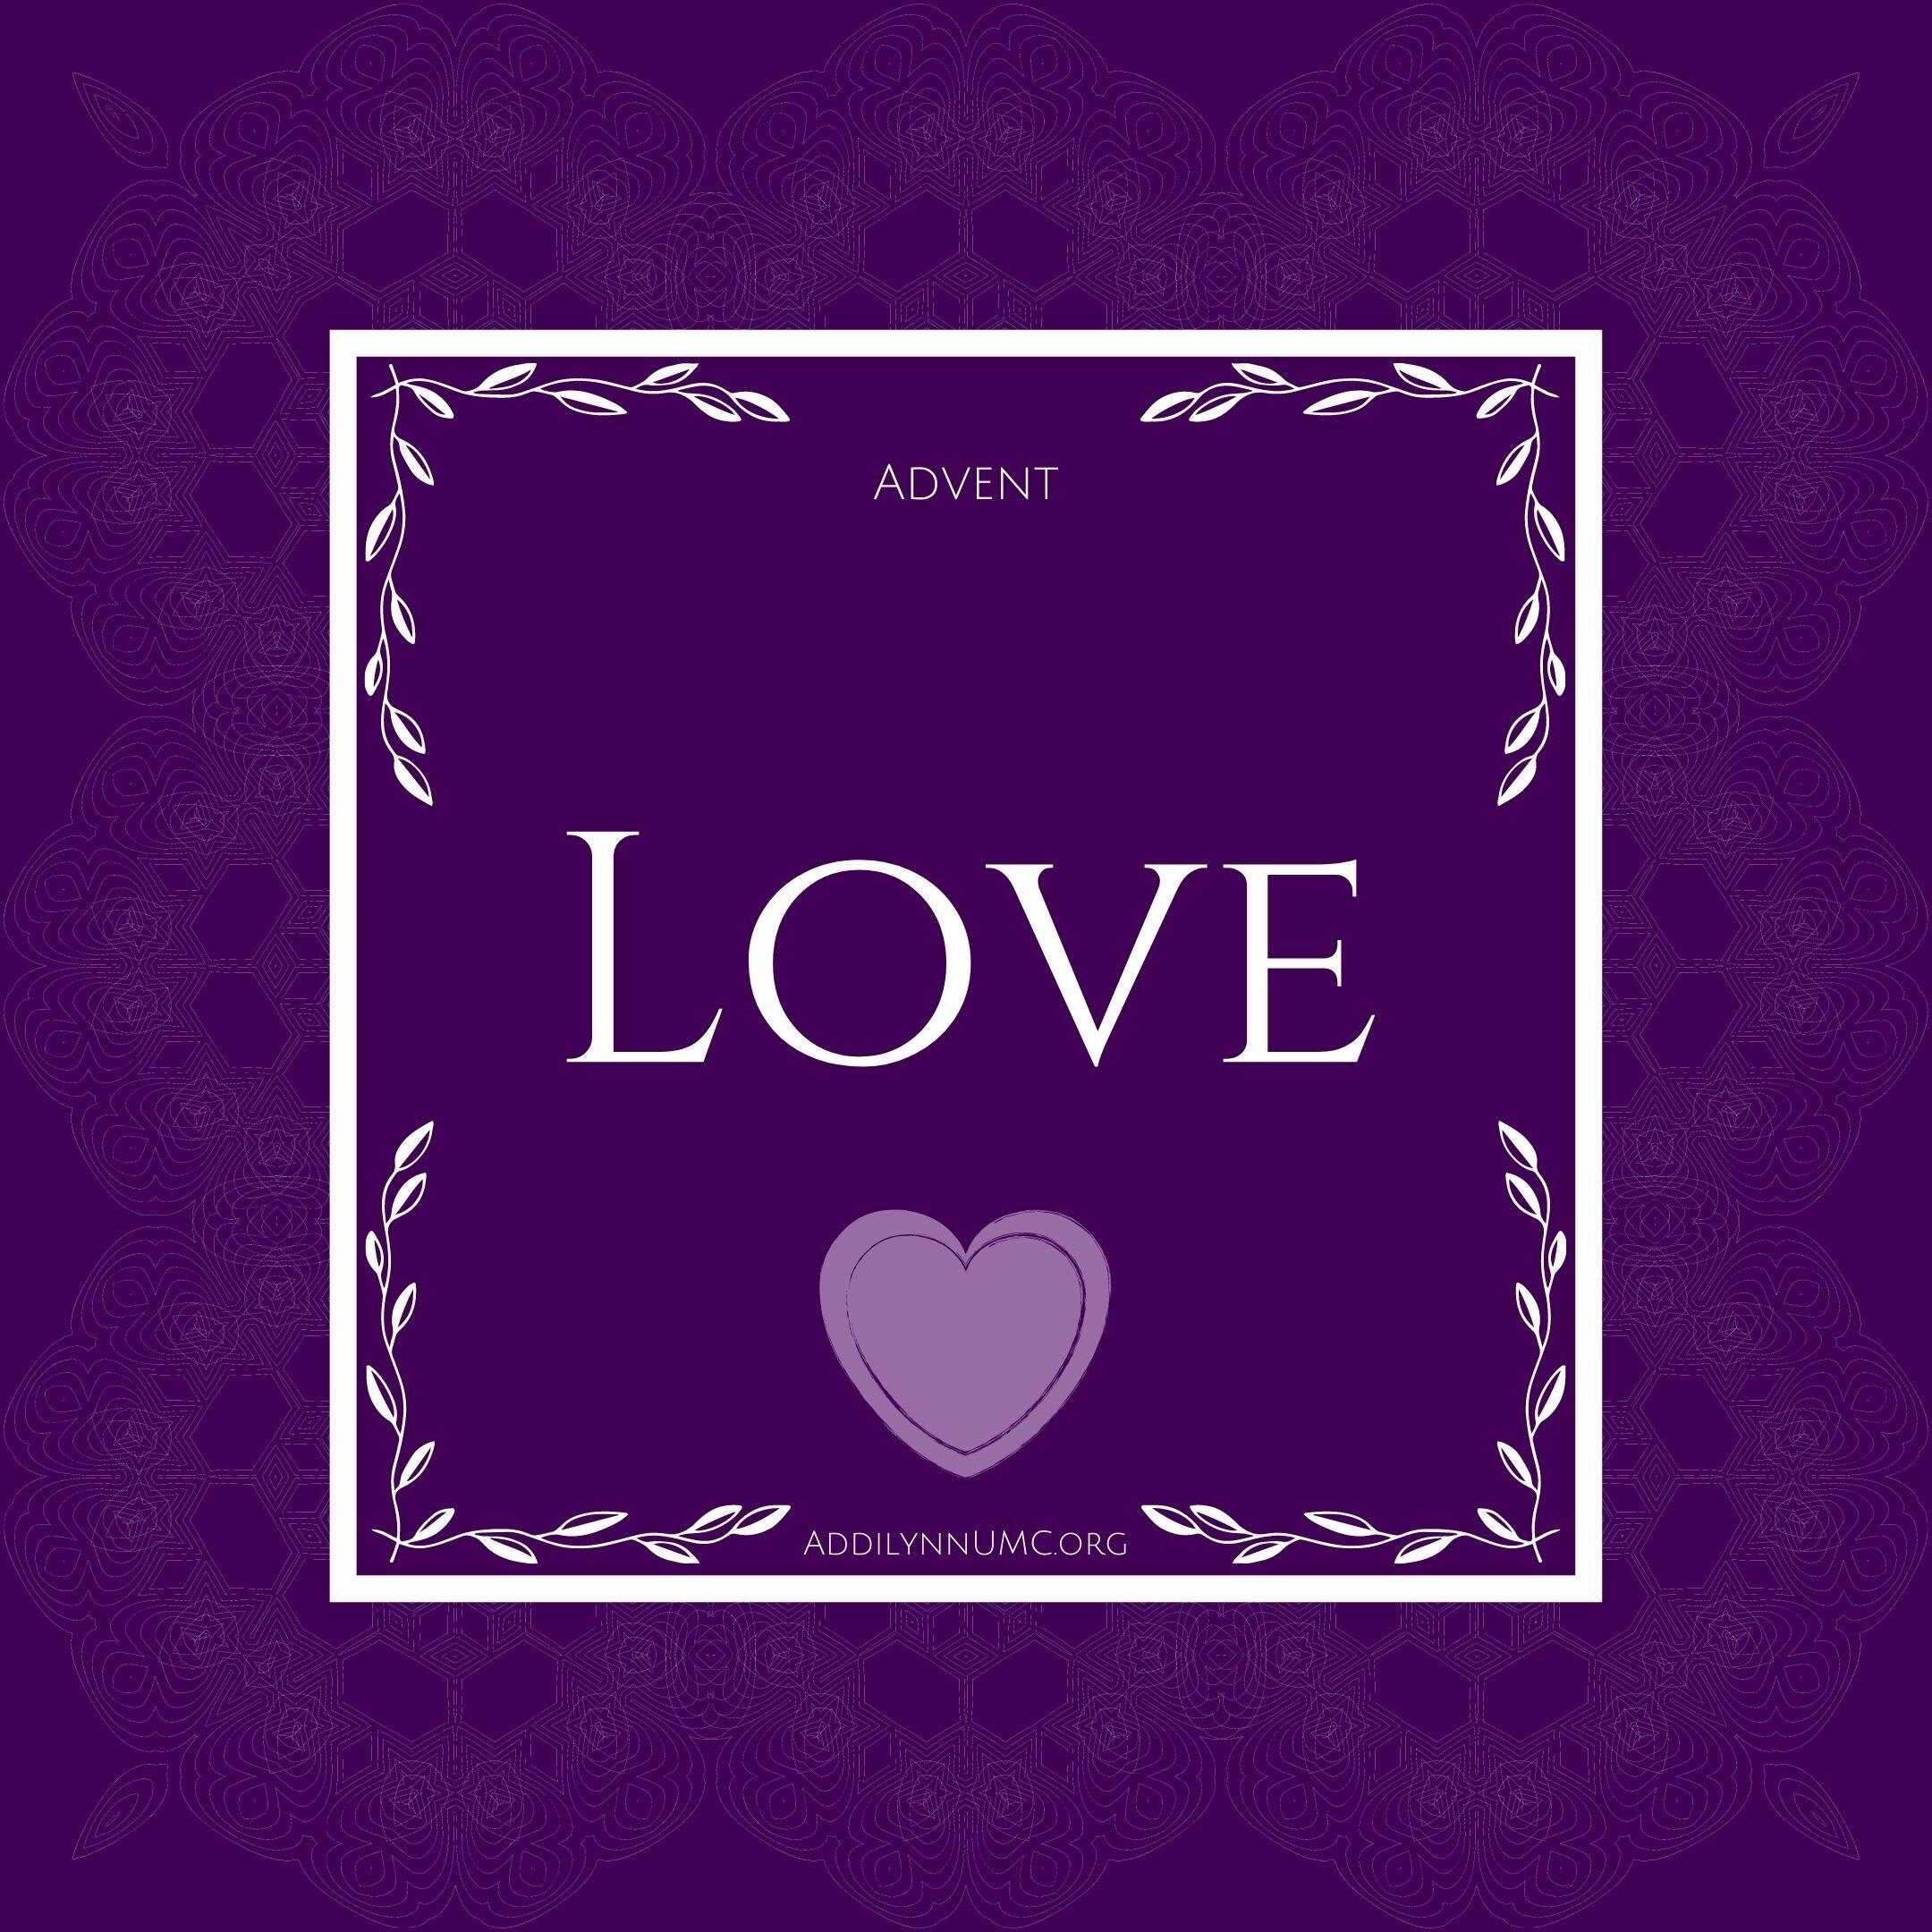 2nd Sunday of Advent - Love